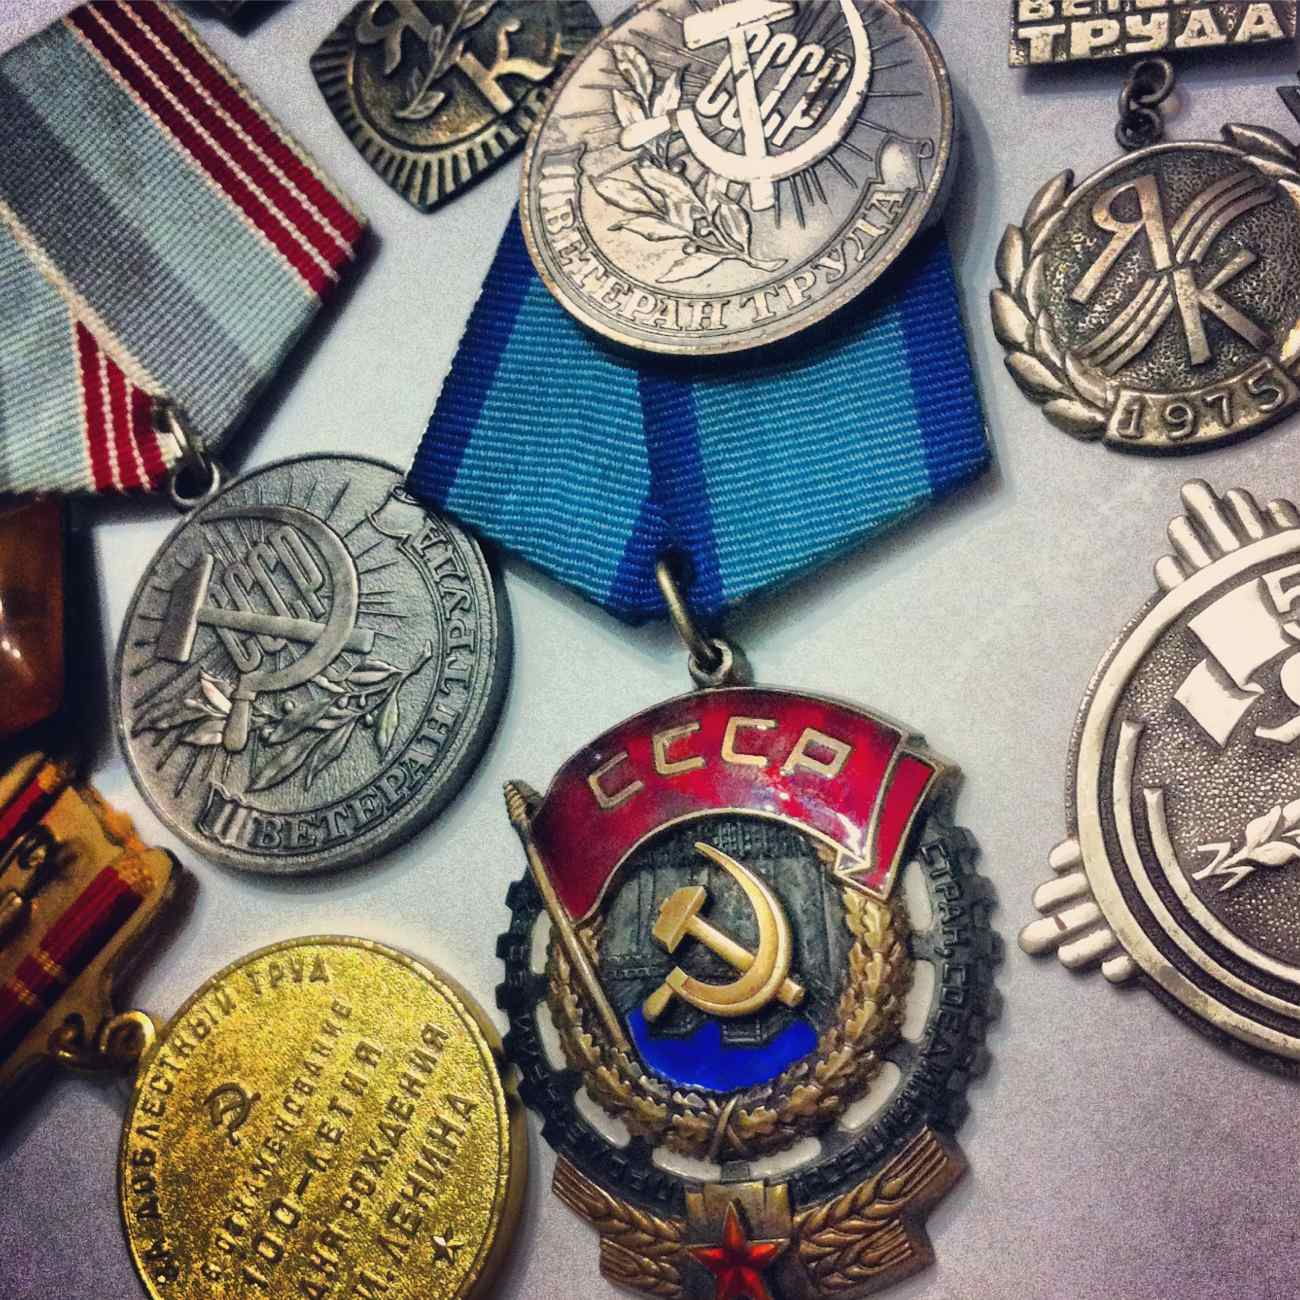 USSR medals awarded to Sasha and Lida for hard work